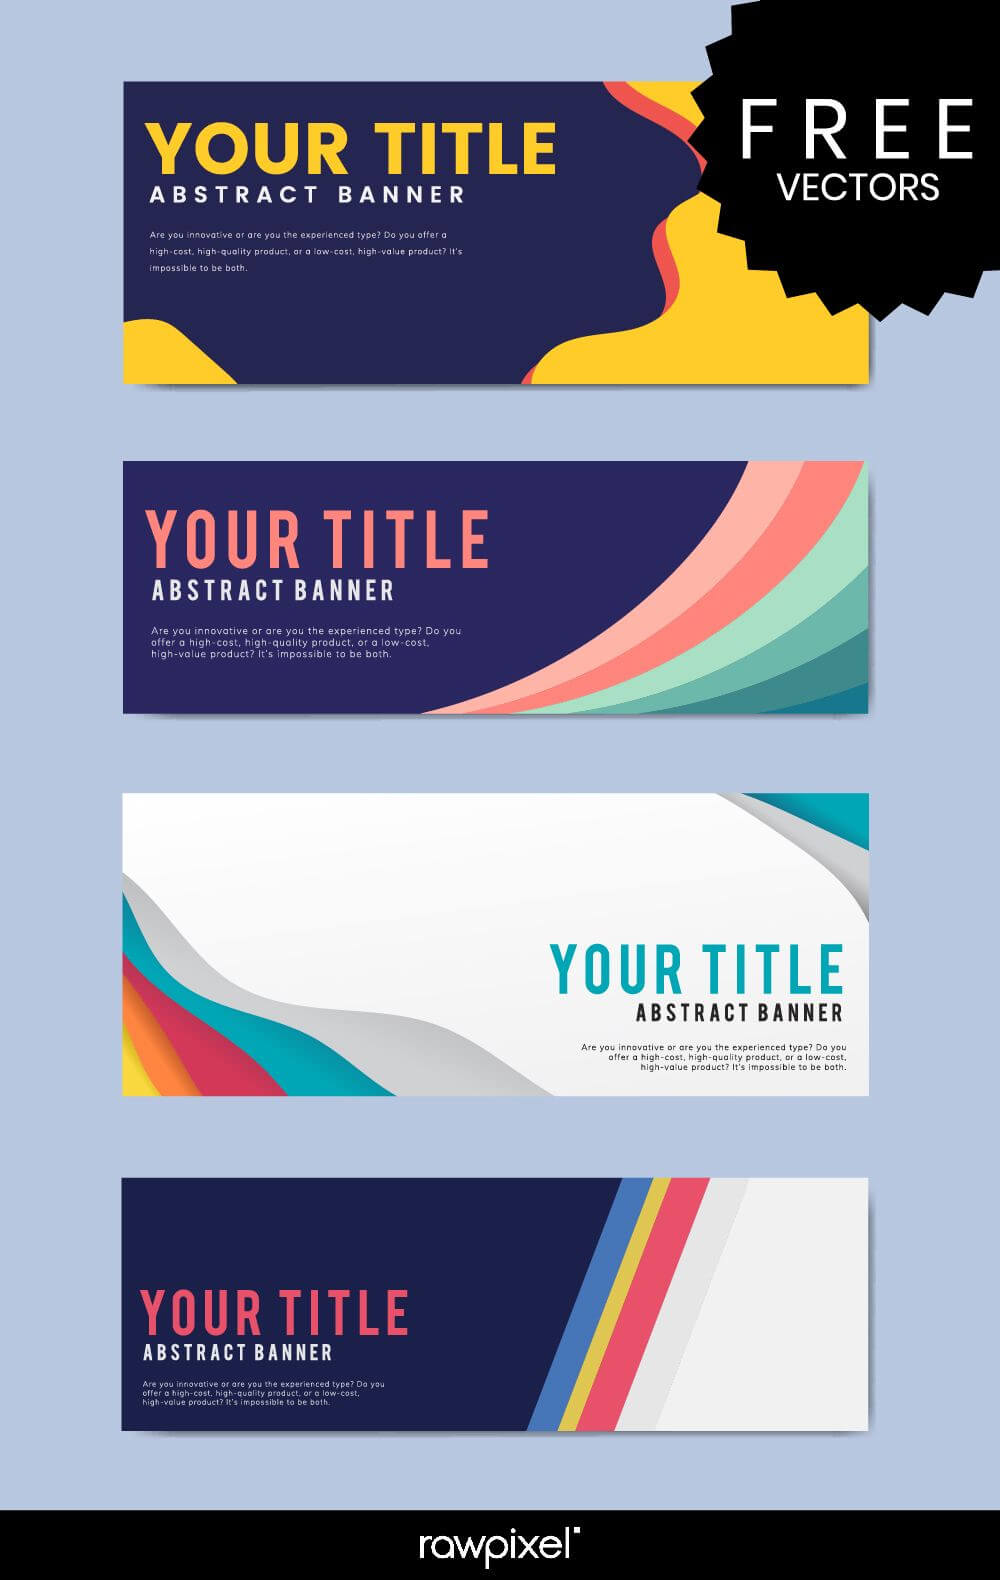 Download Free Modern Business Banner Templates At Rawpixel With Regard To Website Banner Templates Free Download